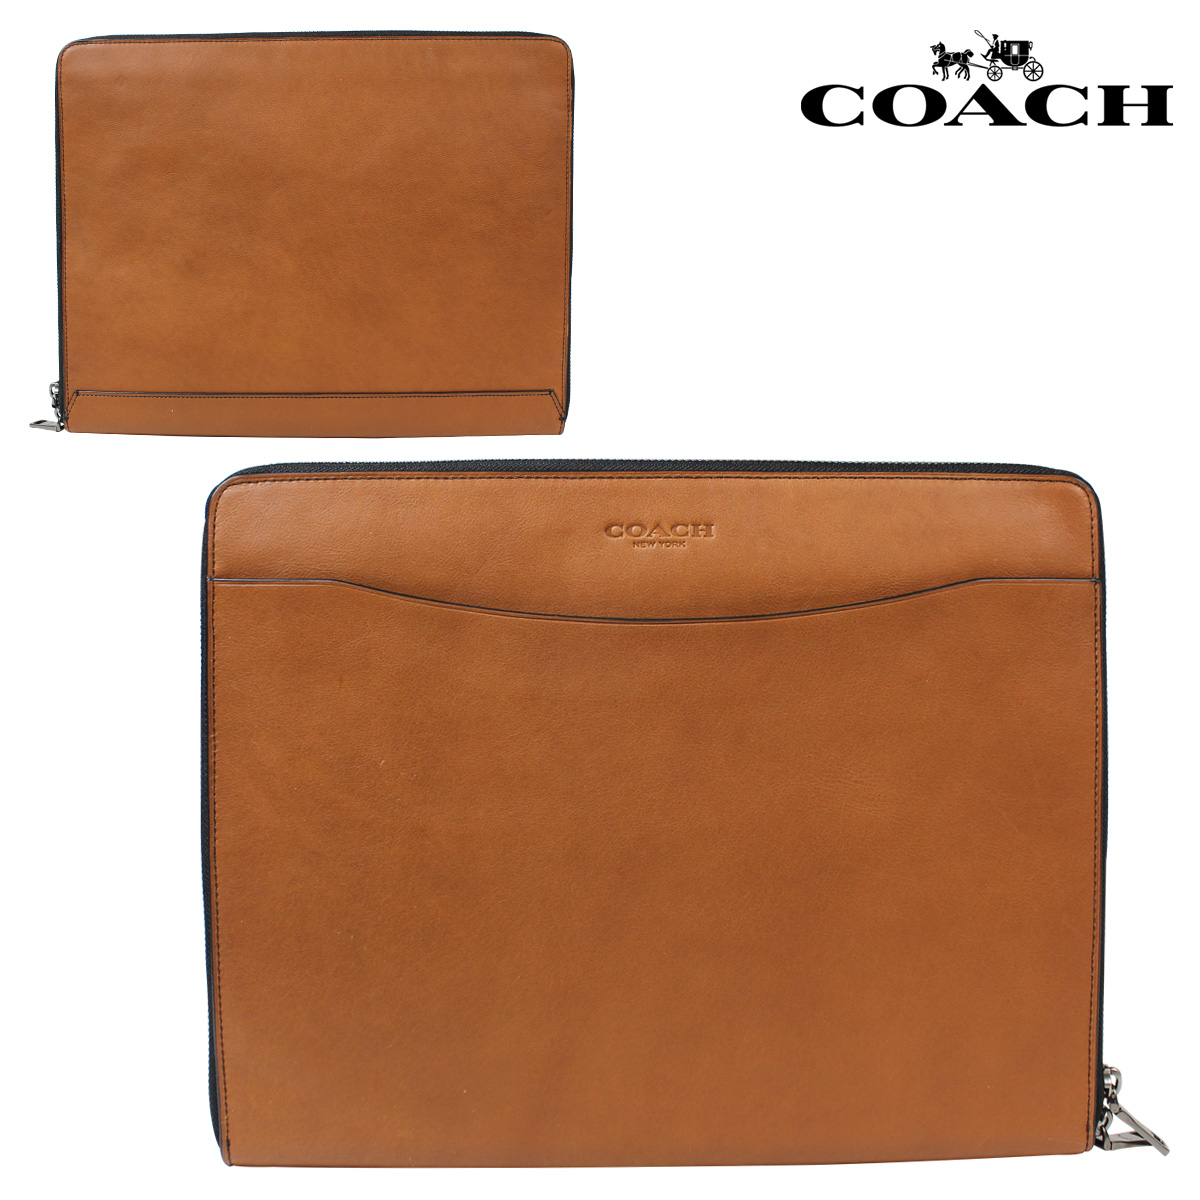 Sold out coach coach men bag clutch bag tablet pc case f63398 saddle